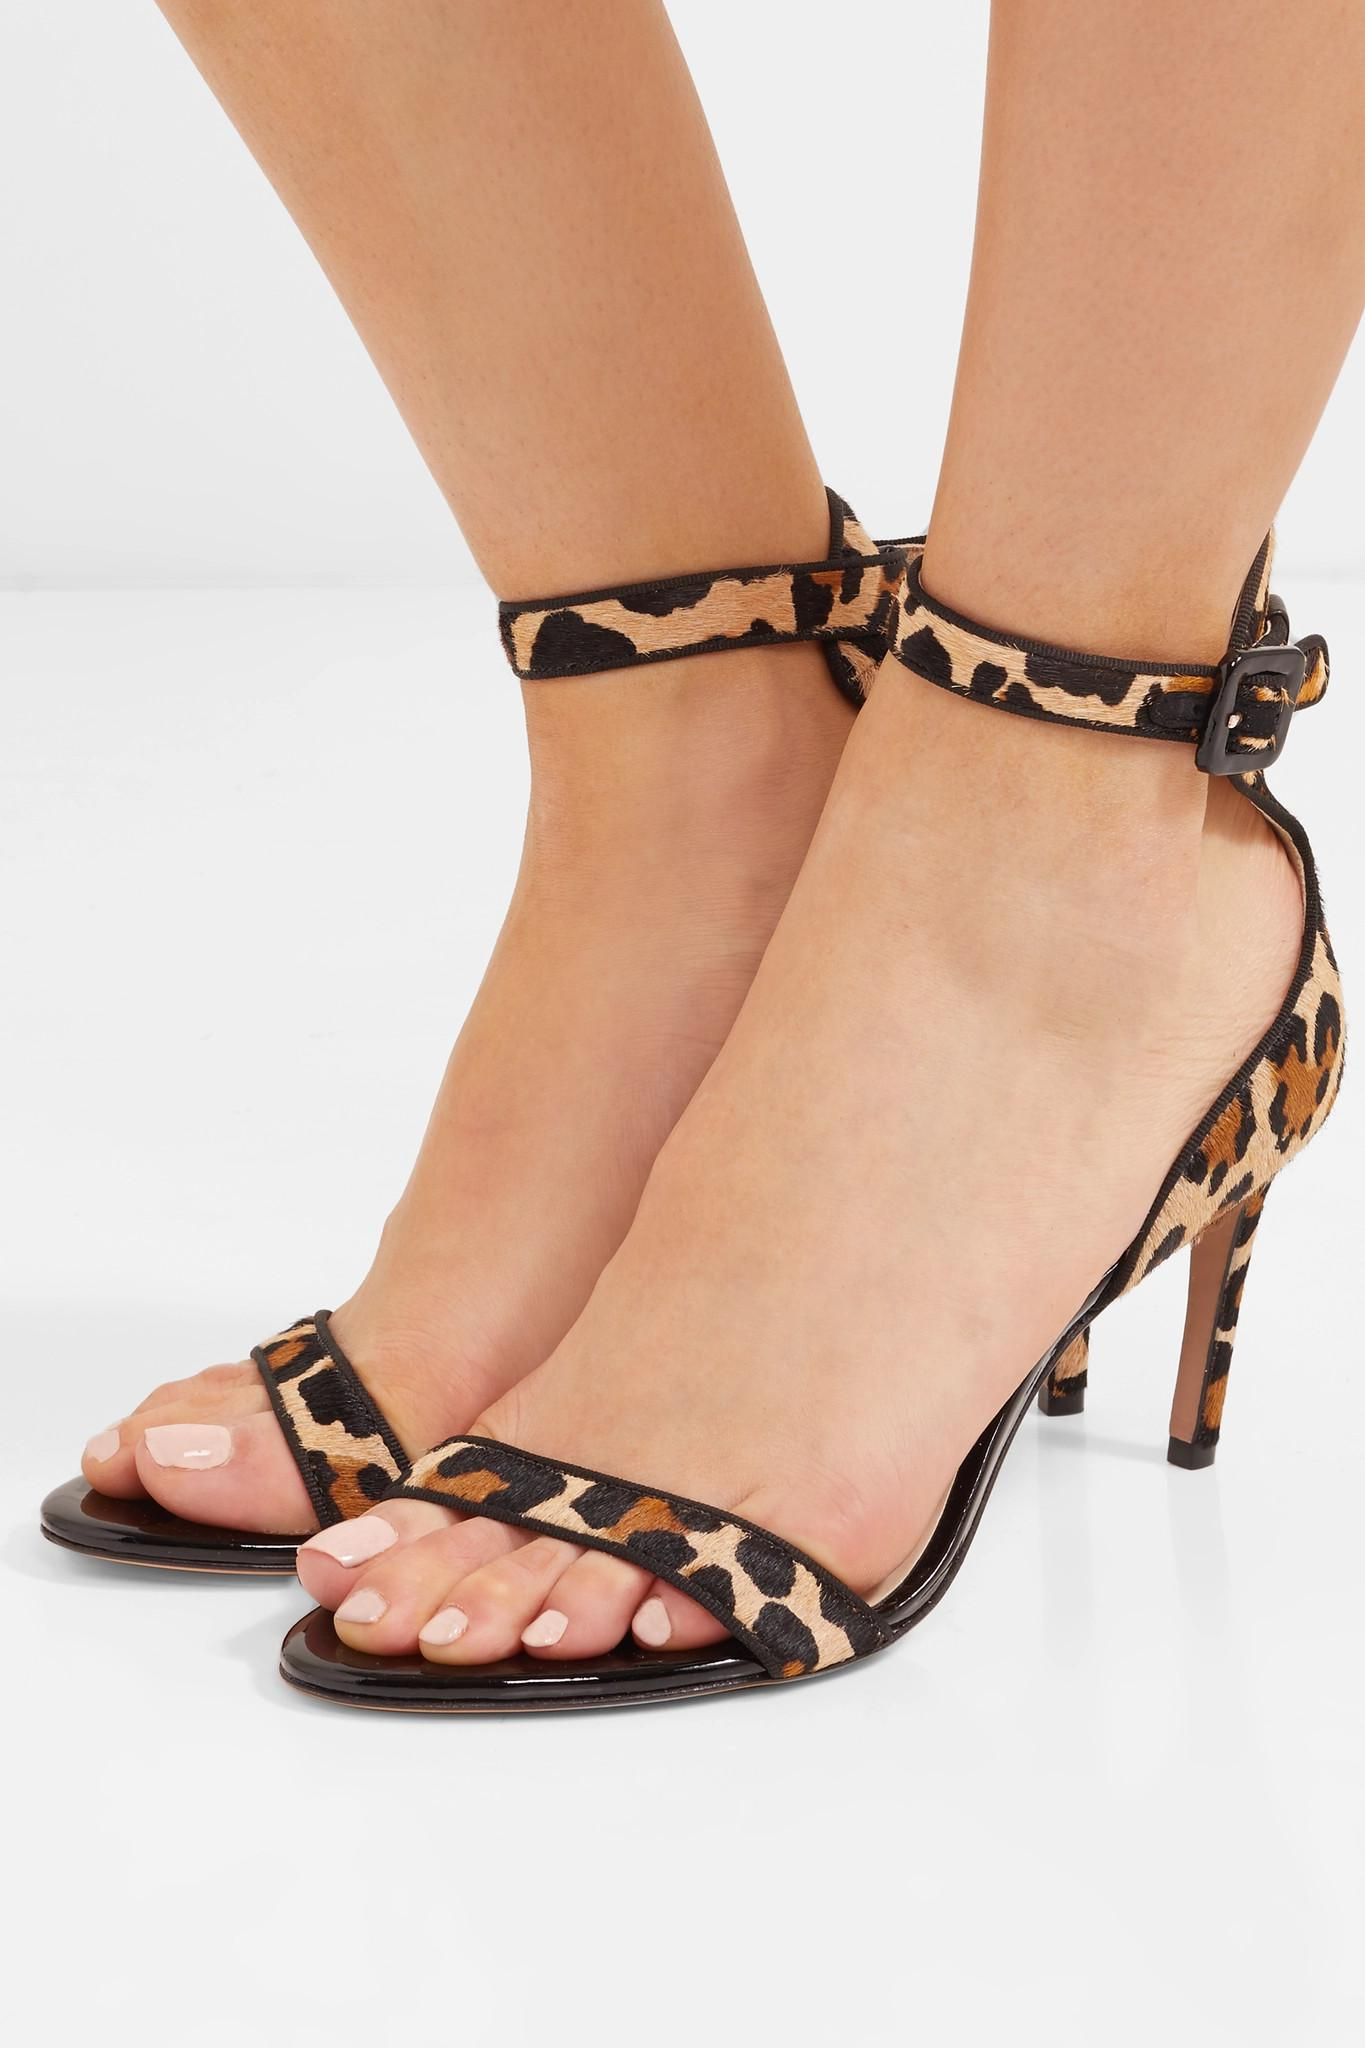 970d18db6 Lyst - Sophia Webster Nicole Leopard-print Calf Hair And Patent ...